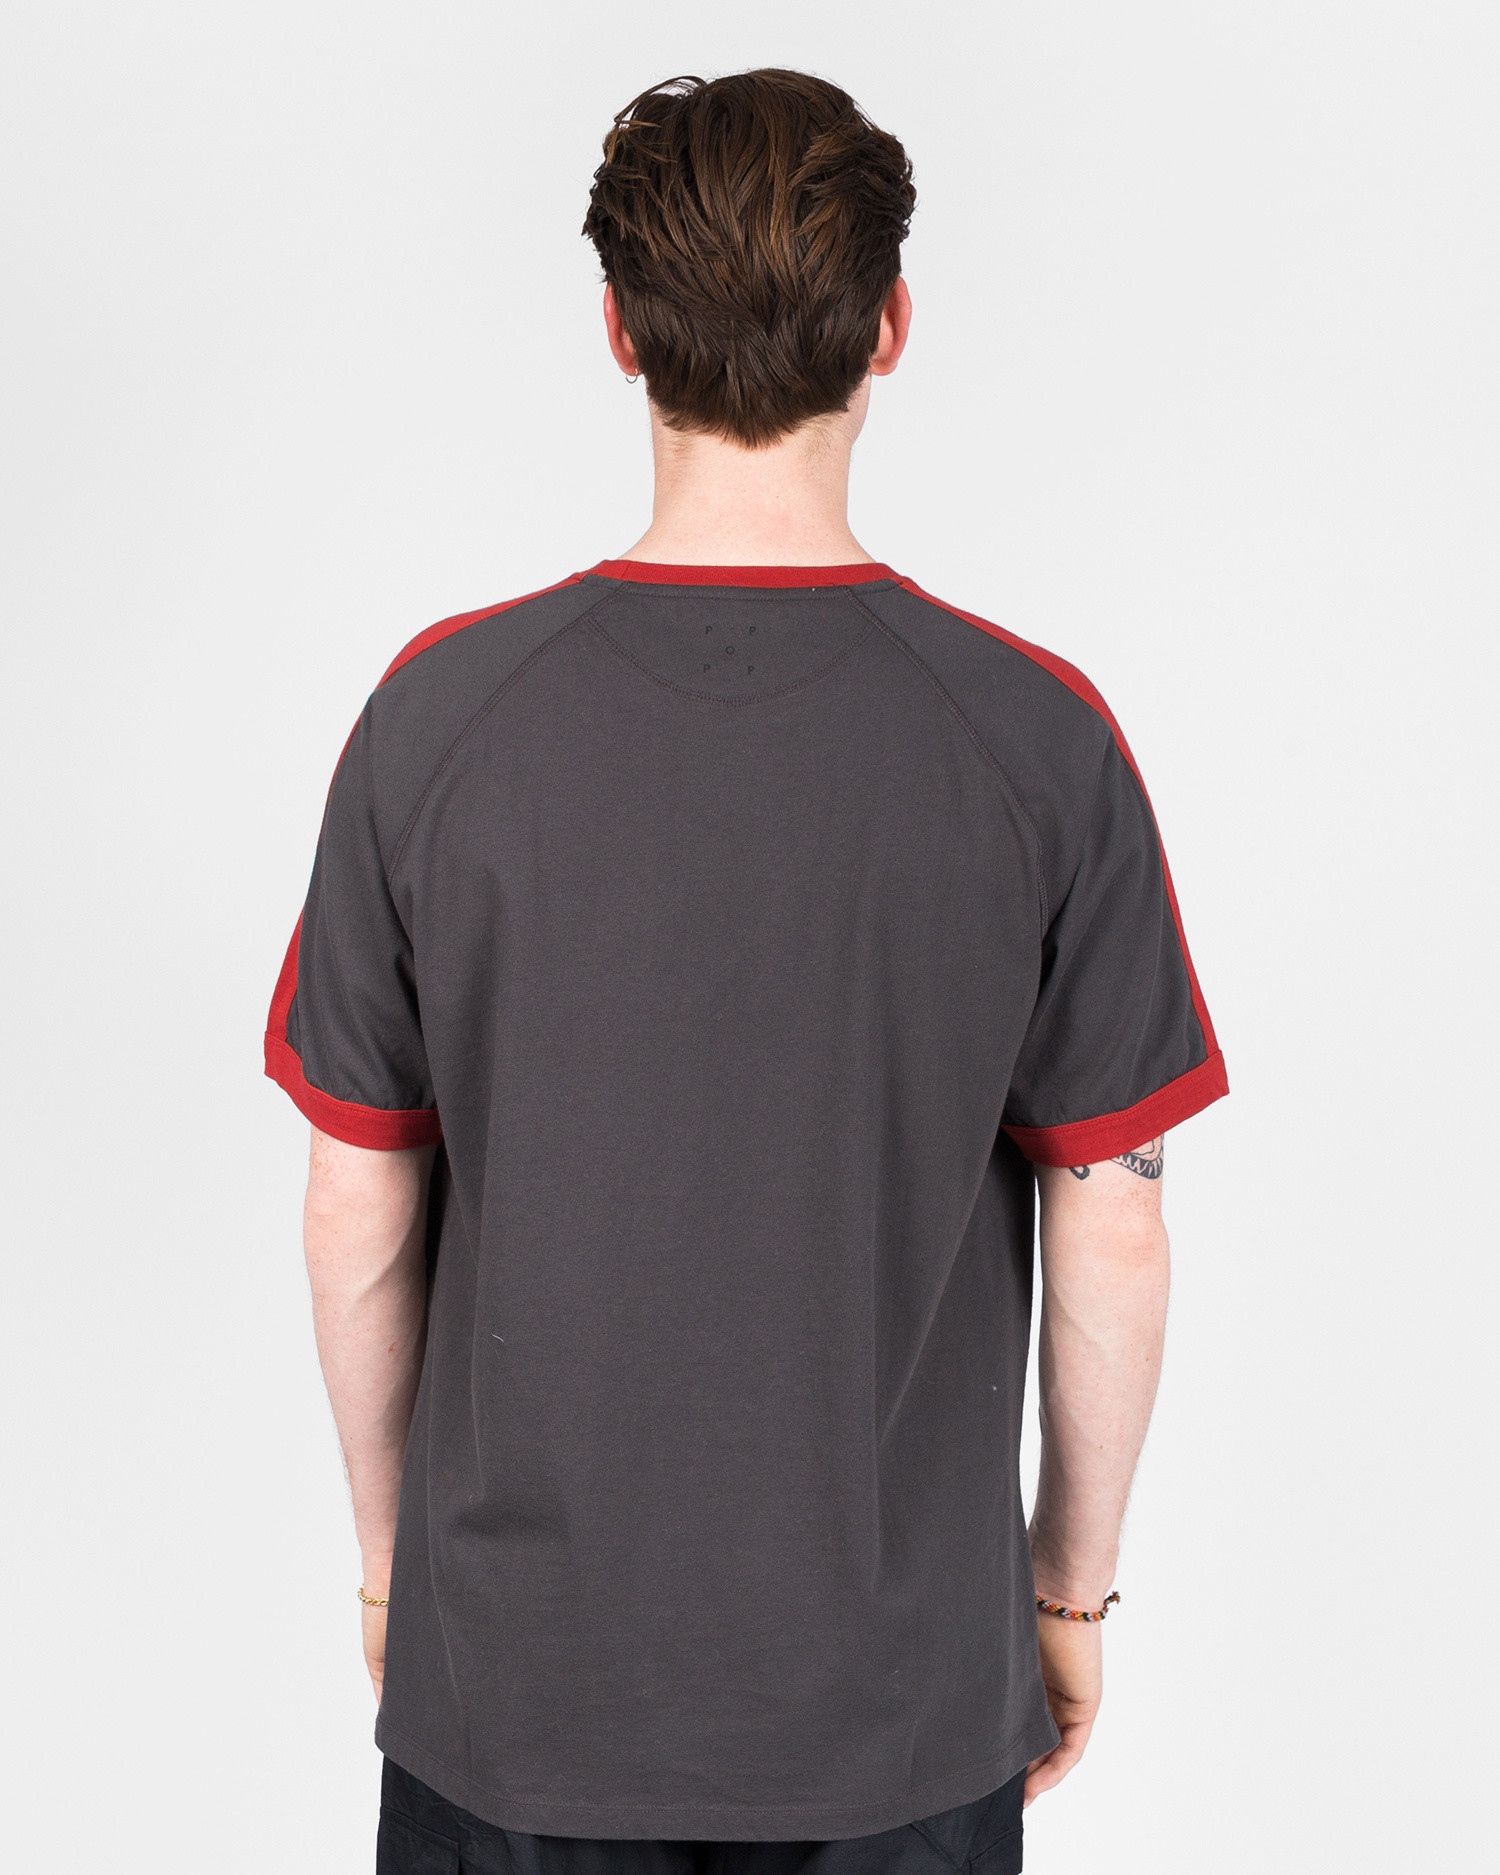 Pop Trading Co keenan t-shirt charcoal/pepper red